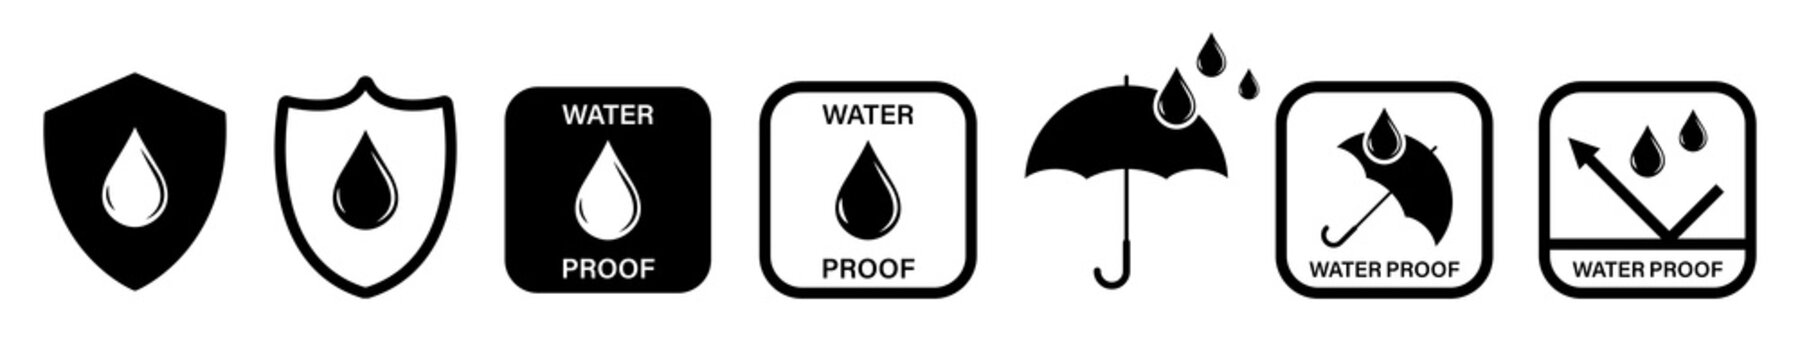 Water Proof icons. Collection of water resistant signs. Vector isolated on white